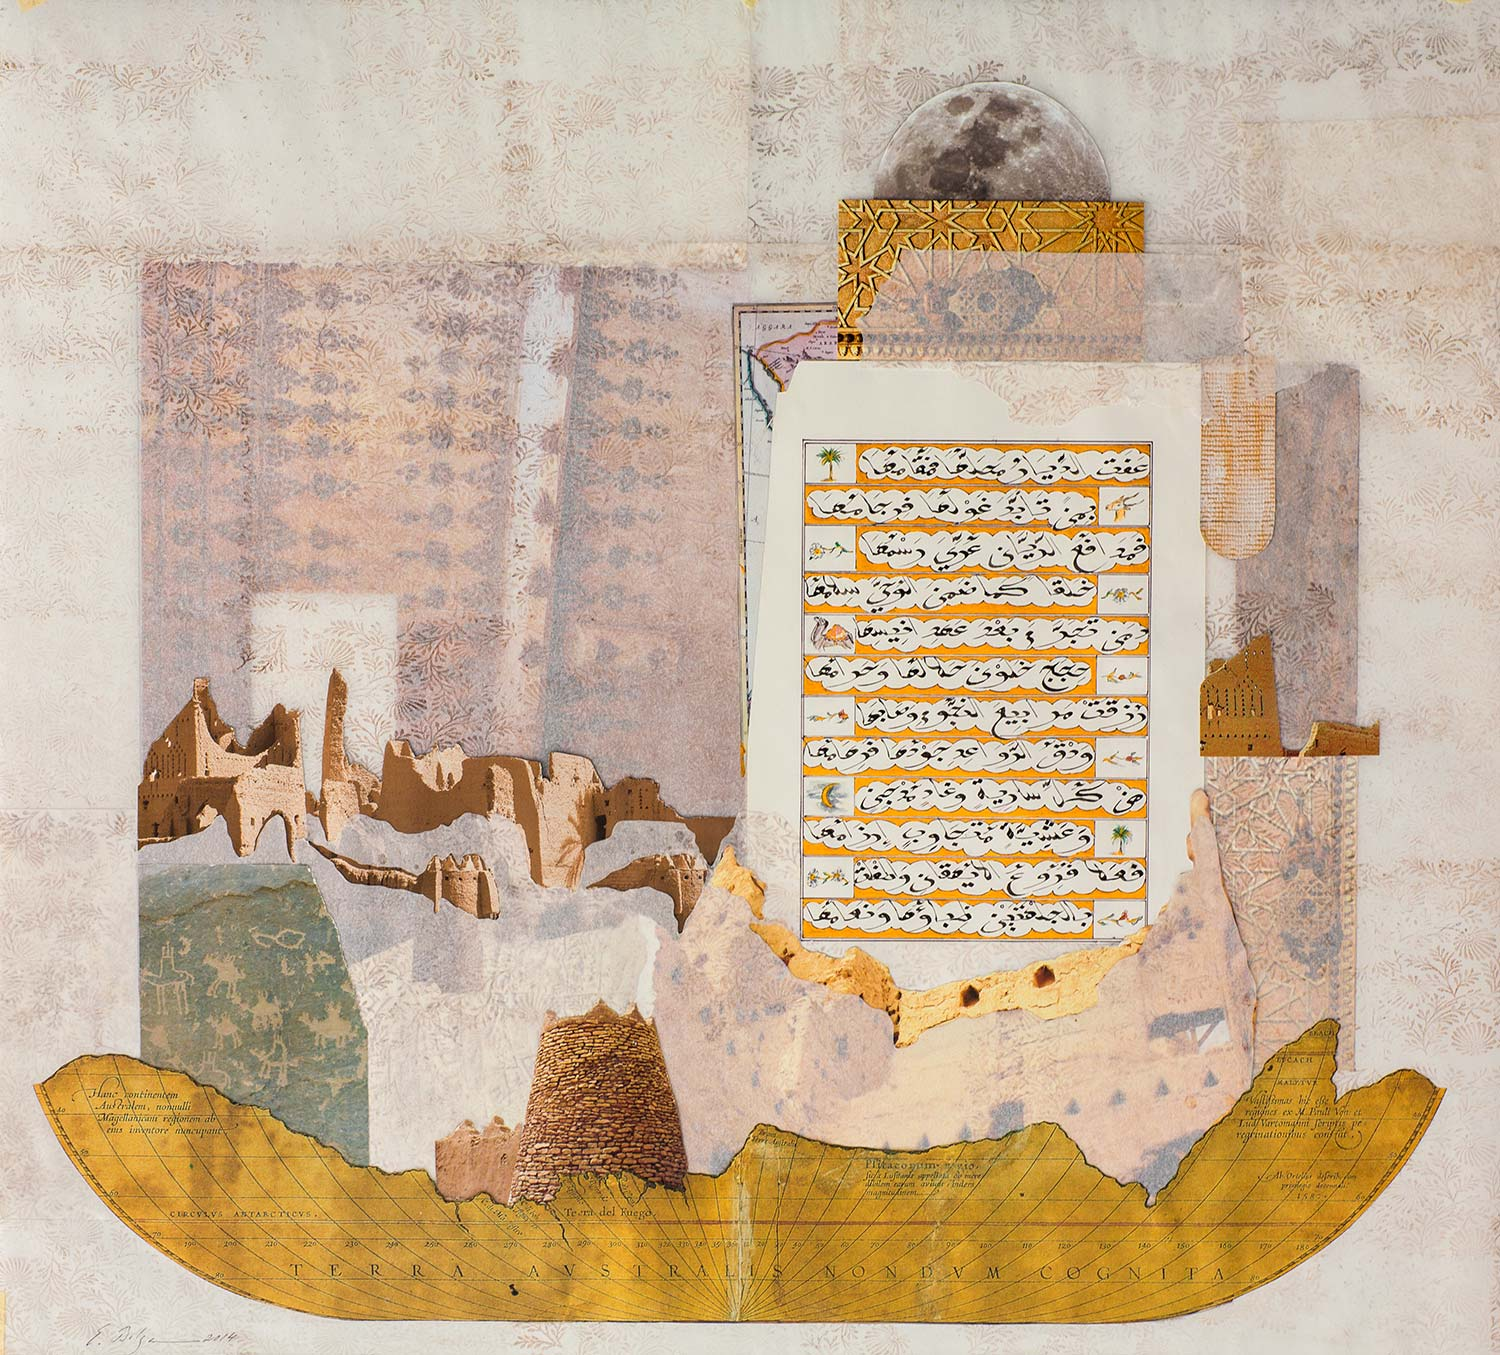 The Golden Ode I  Paper, Iranian ink, watercolour and gold on hand treated pergaminata paper w 94 x h 86.5 x 4.8 cm 2014